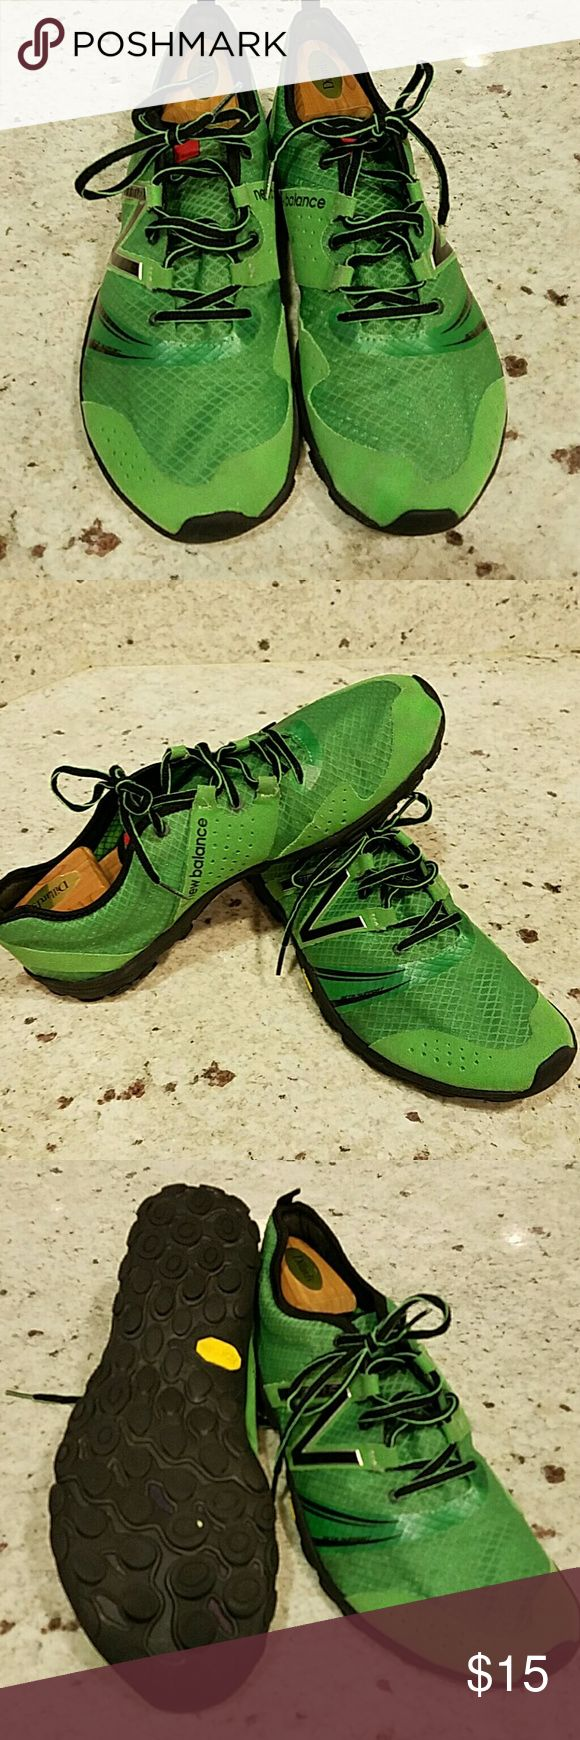 New Balance mens Minimus shoes Size 11 gently worn. Kelly Green. New Balance Shoes Athletic Shoes